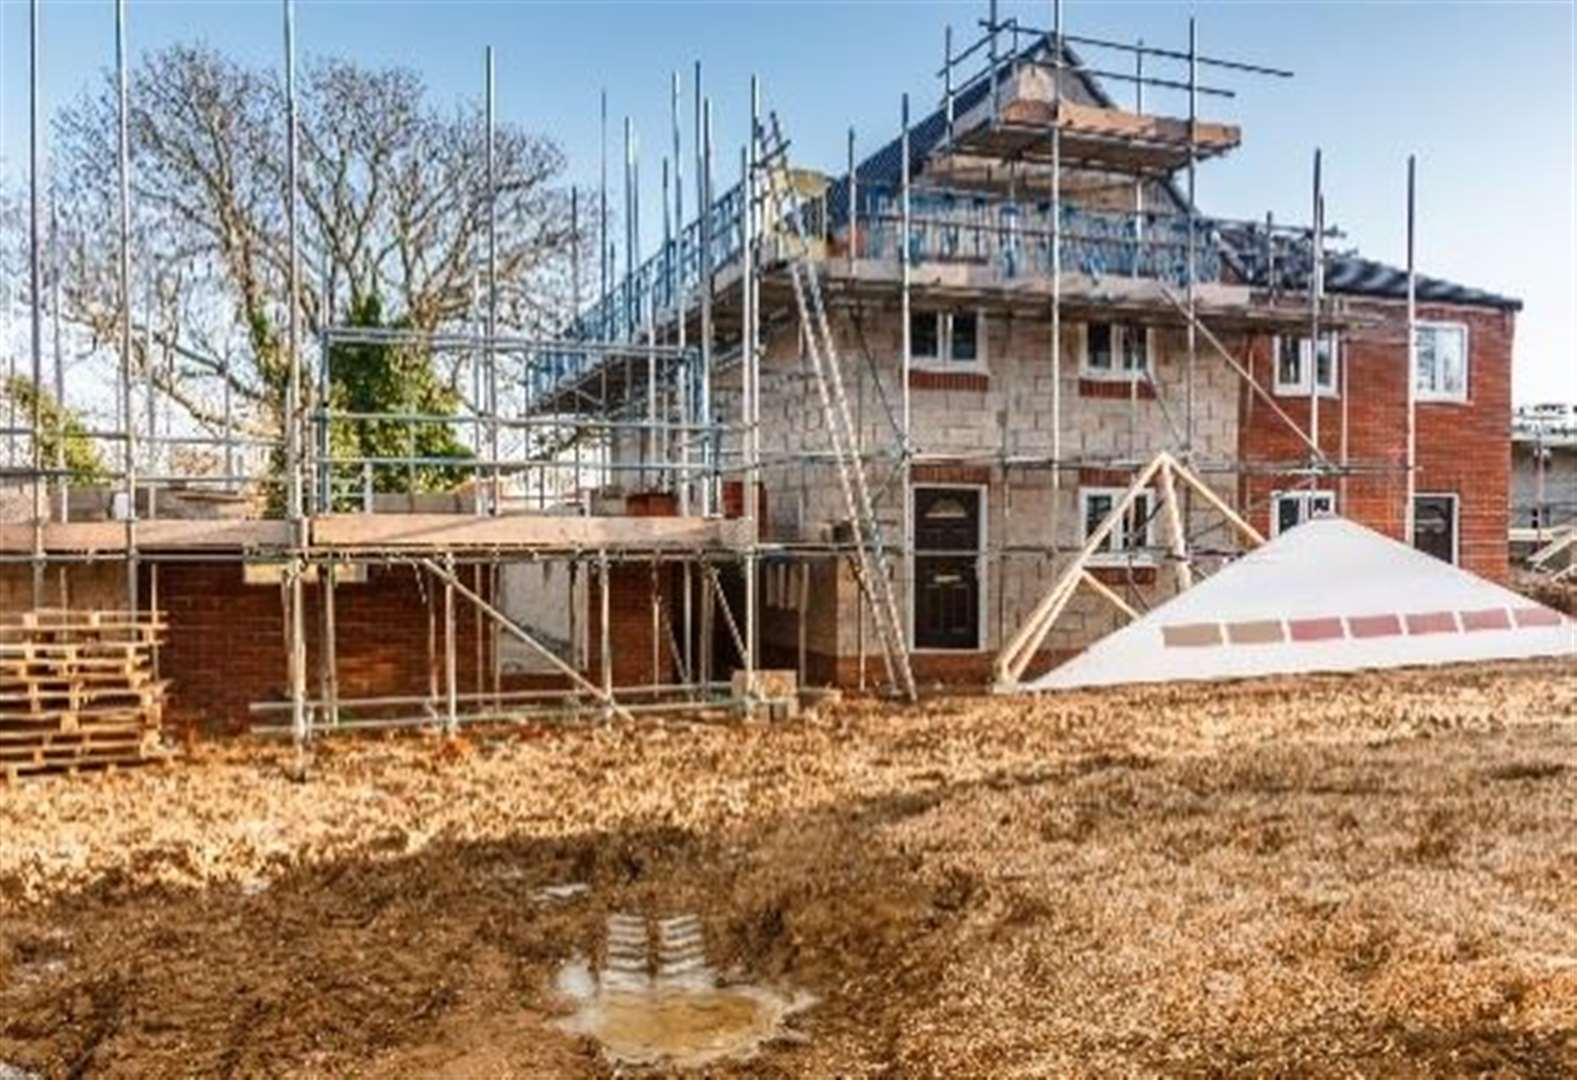 About 18,000 new homes needed in Mid Suffolk and Babergh by 2036